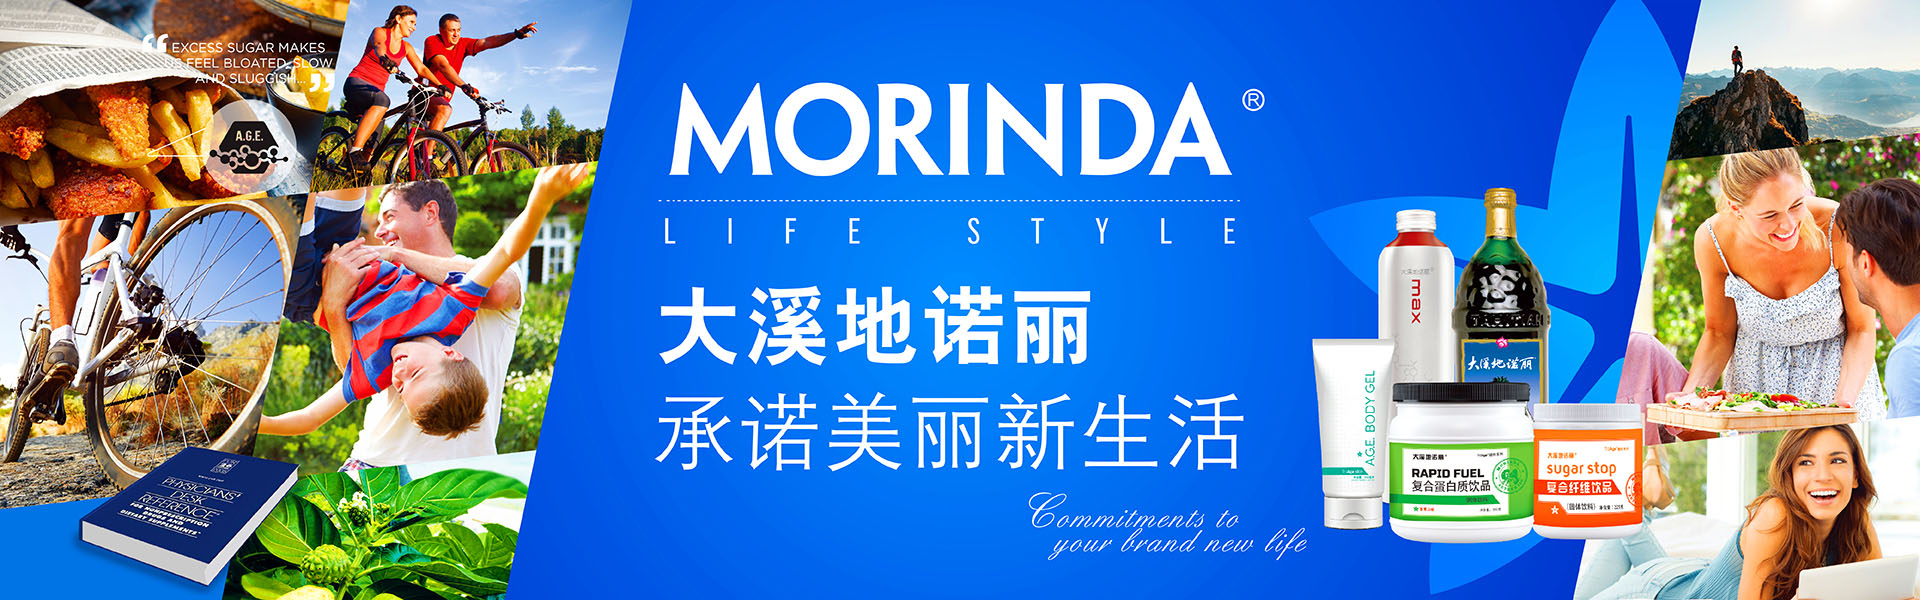 Image of Morinda warehouse